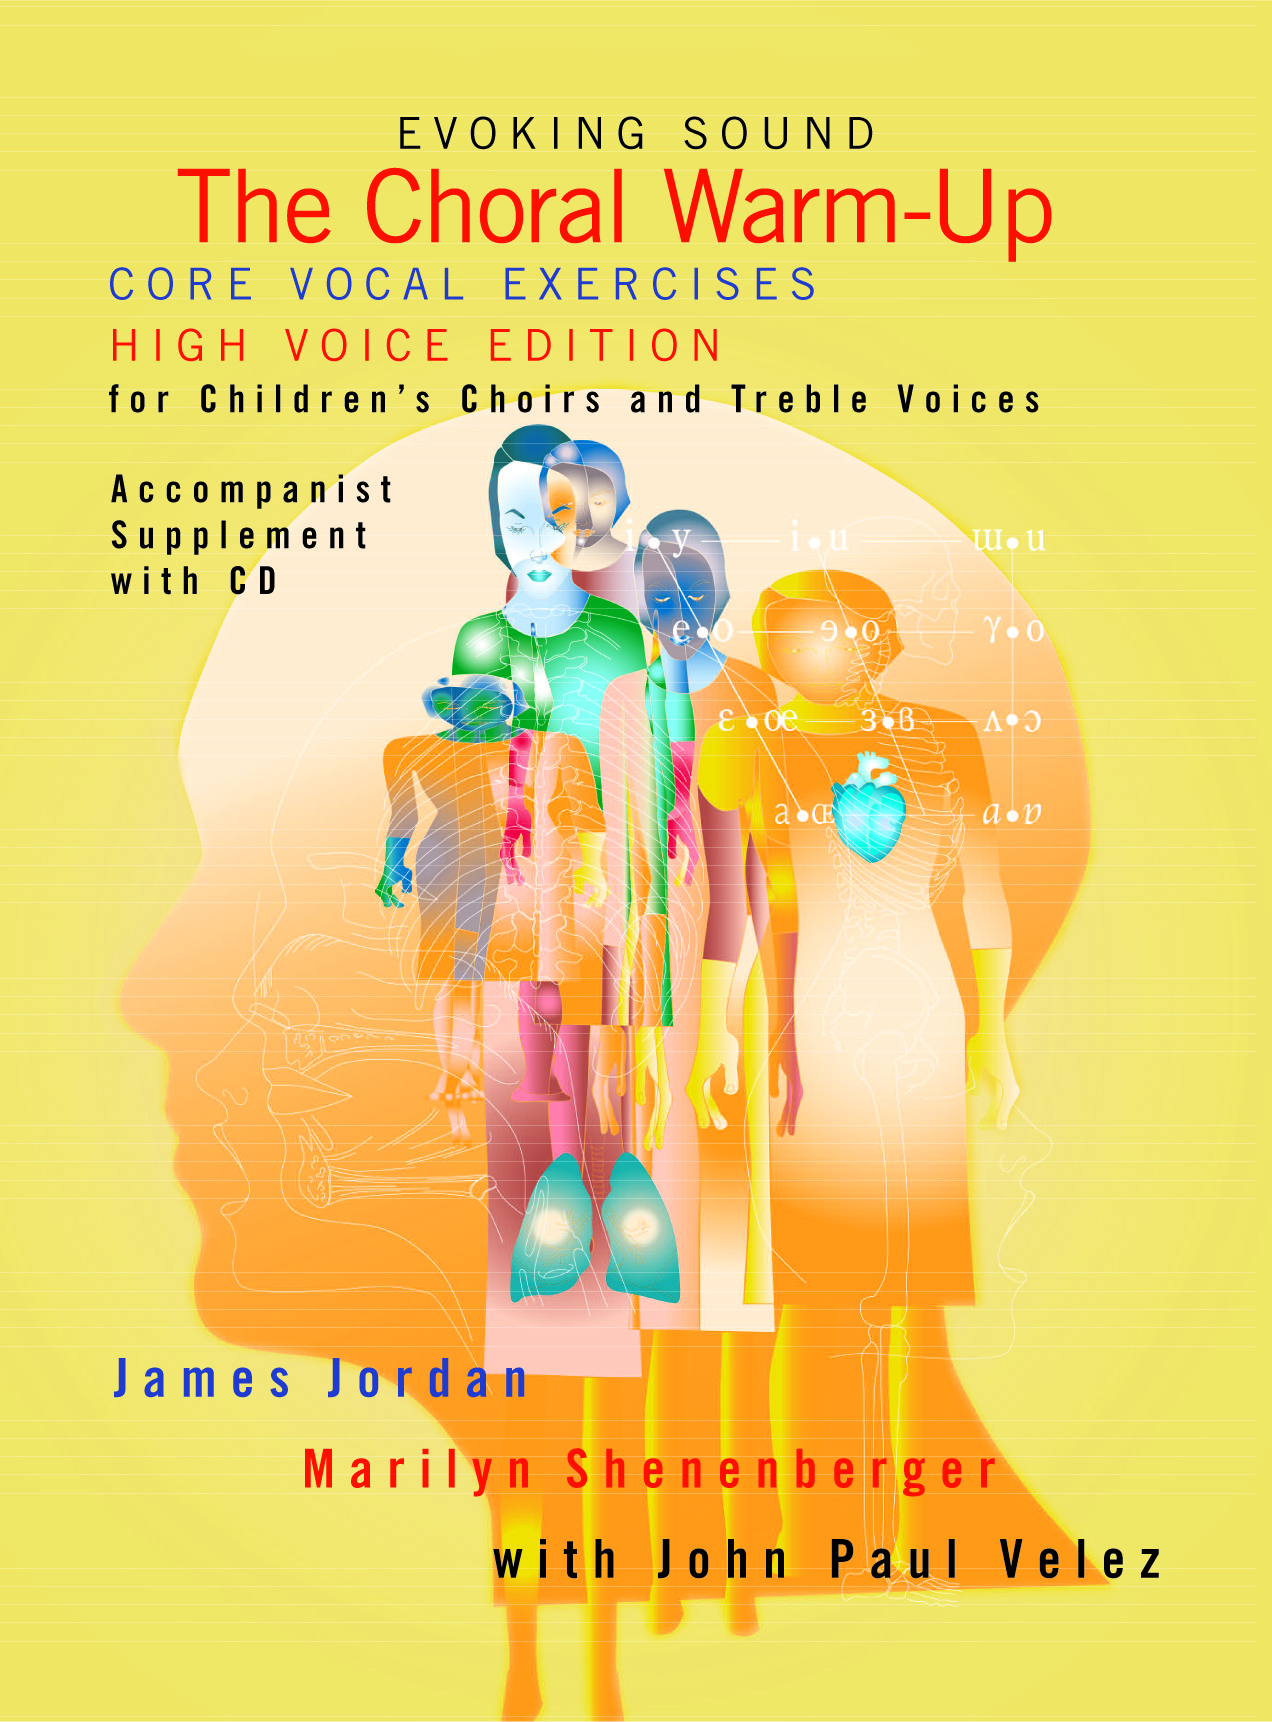 The Choral Warm-Up: Core Vocal Exercises for Children's Choir and Treble Voices